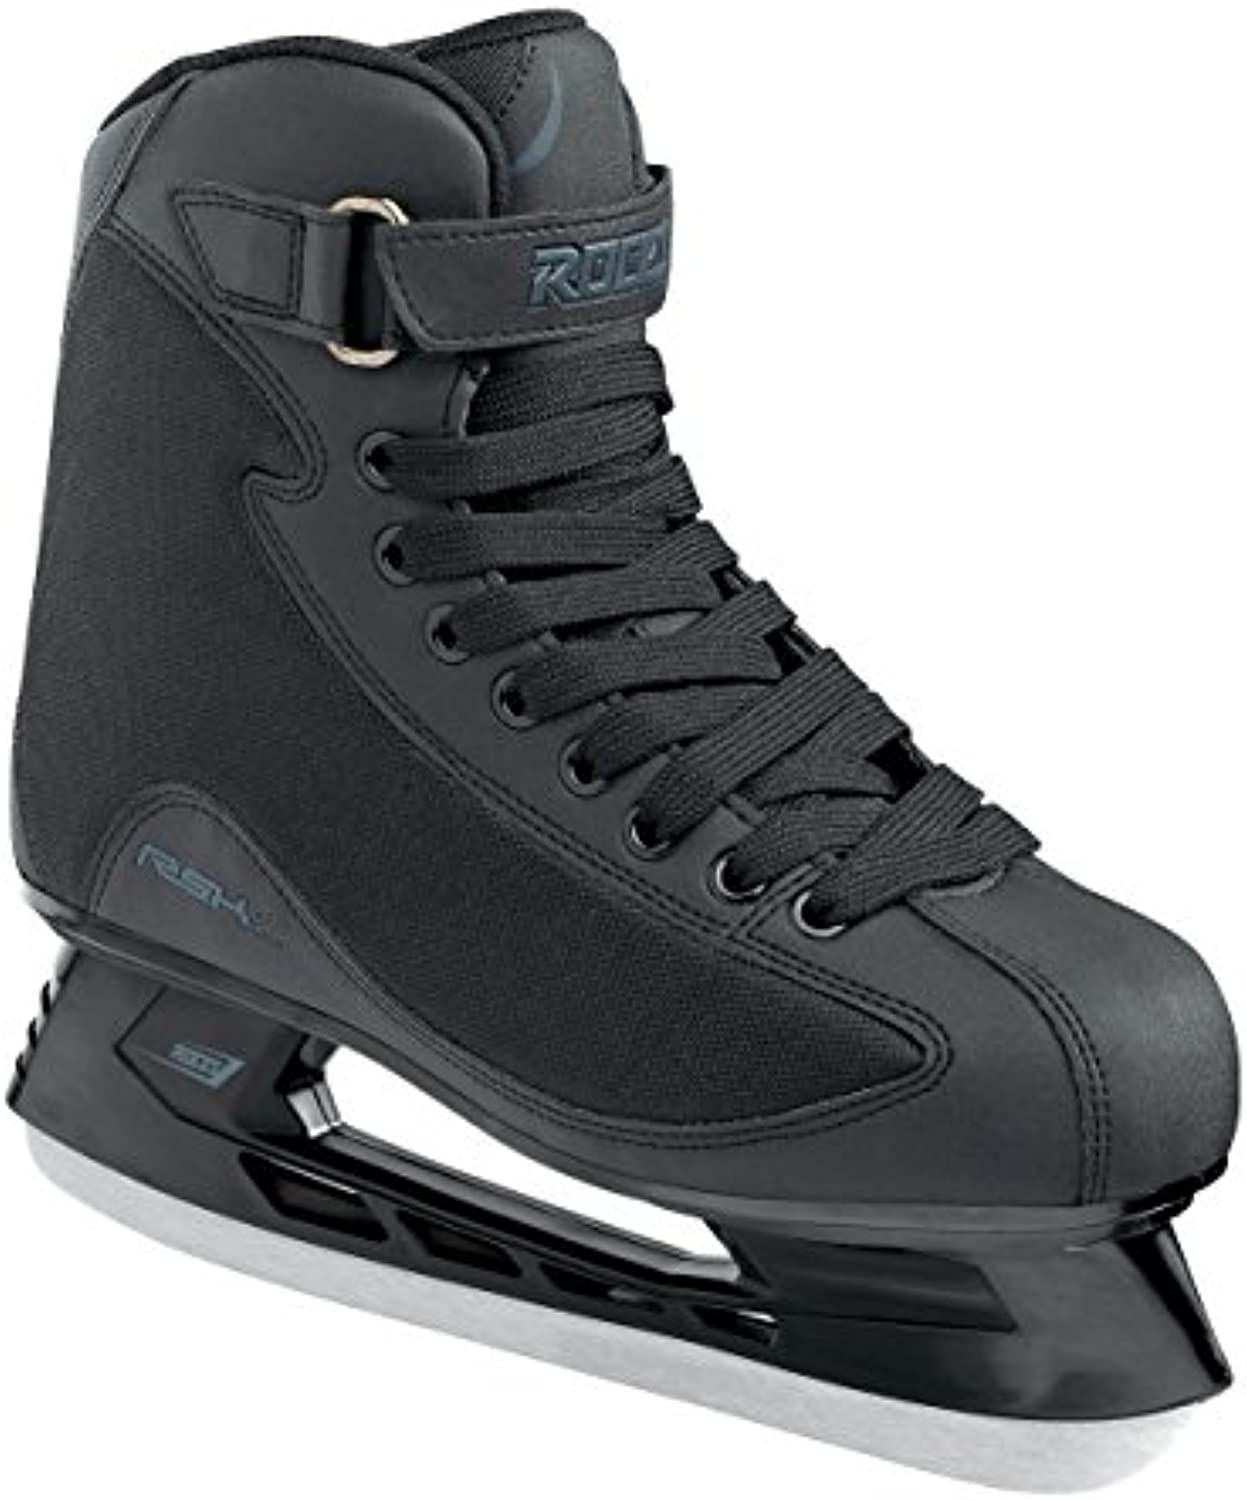 Roces Rsk 2 Ice Skate, Hombre, Negro, 47